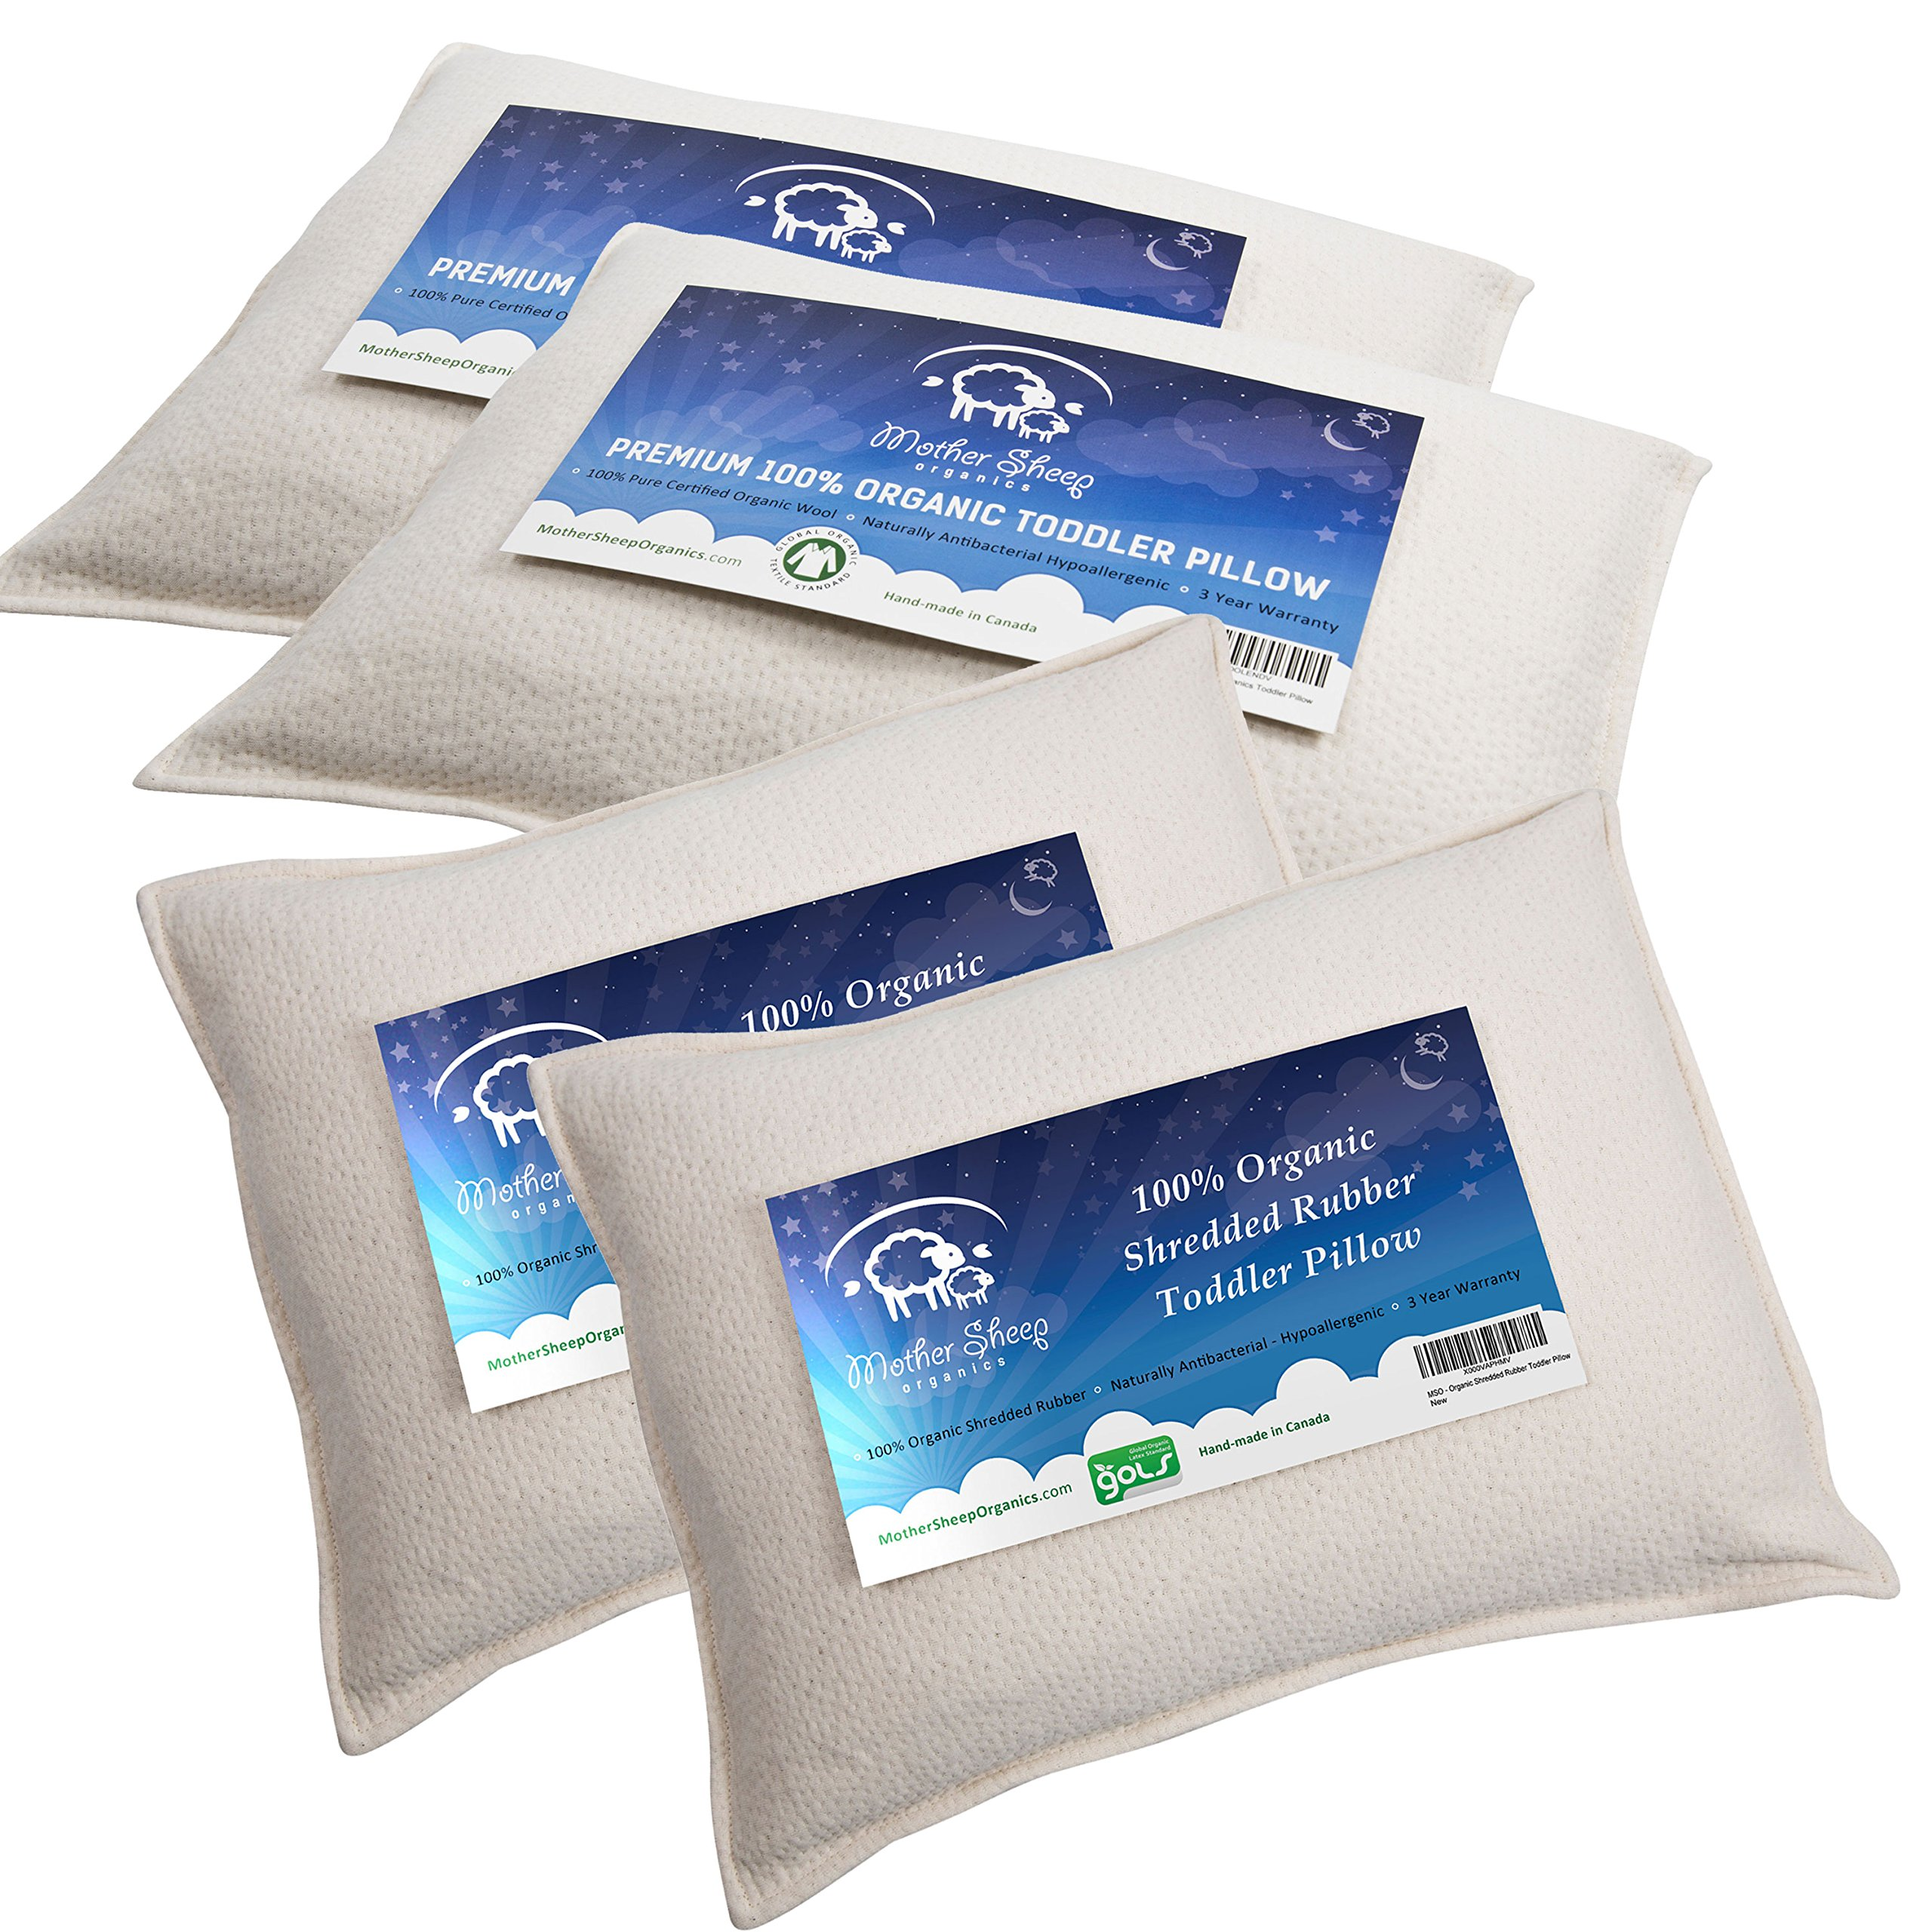 Bundle of 4 items – 2 Organic Wool Toddler Pillows & 2 Organic Shredded Rubber Toddler Pillows, All Natural & 100% GOTS Certified Pure Organic, Wool 'Pearls' Filling & 100% GOLS Certified Pure Organic